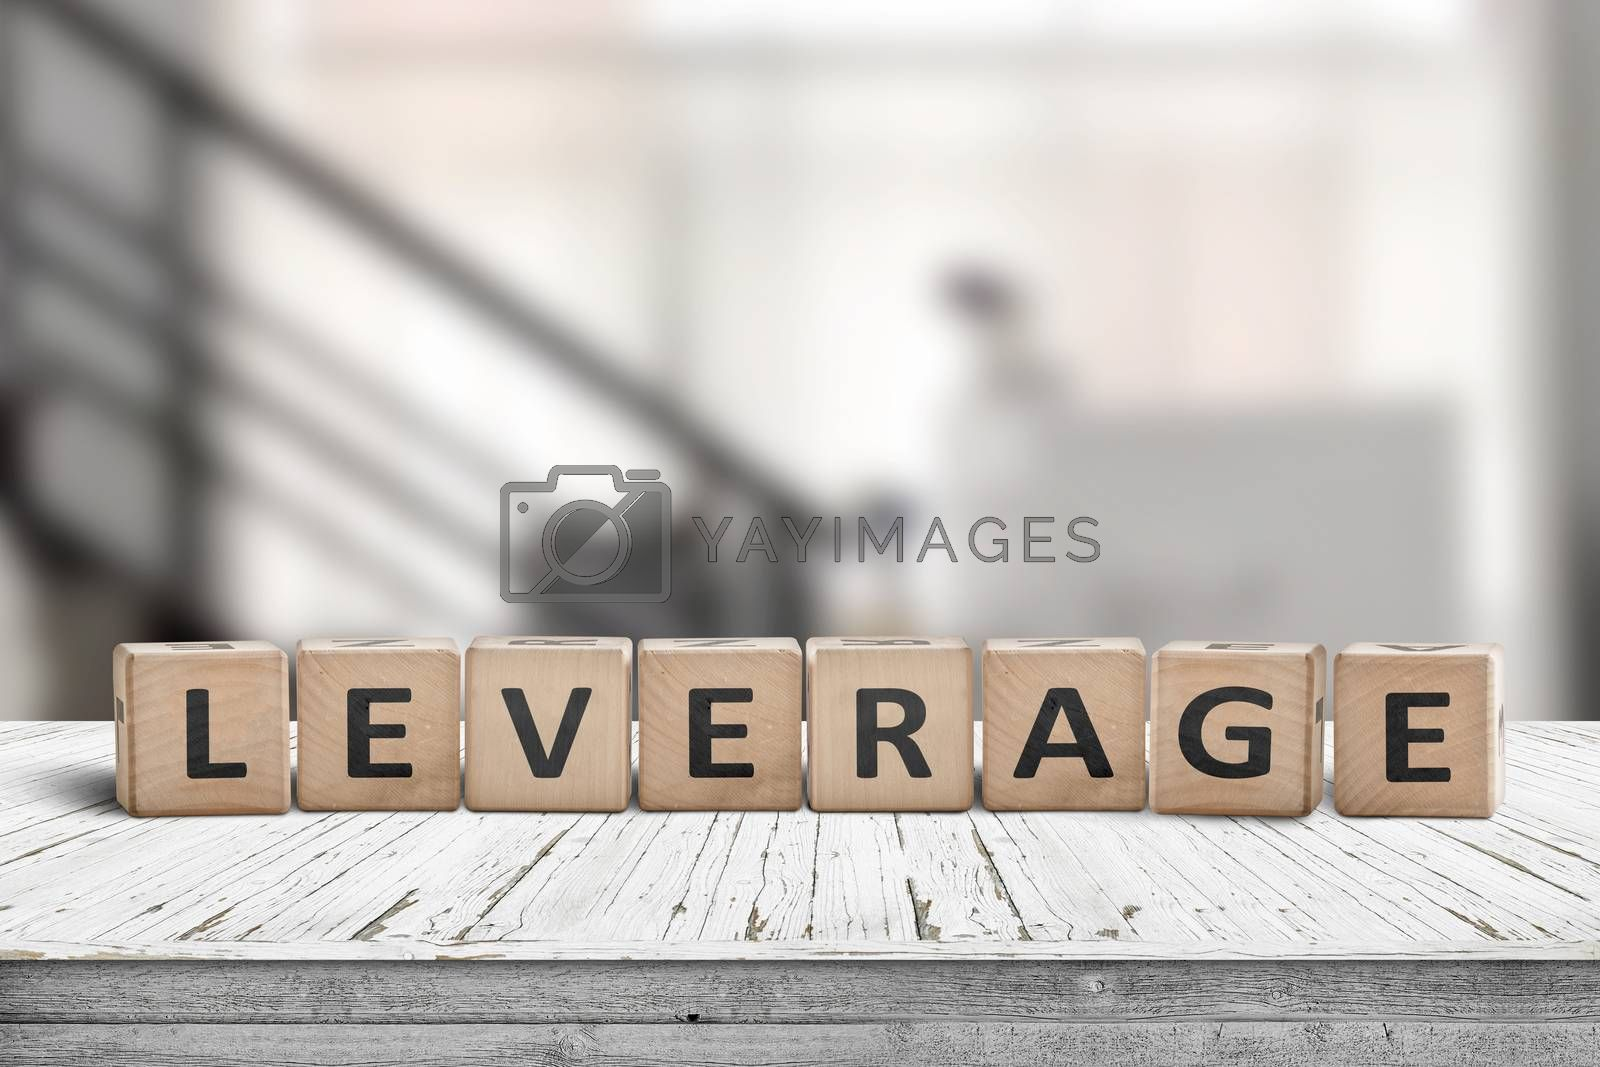 Leverage sign in a office environment on a wooden desk